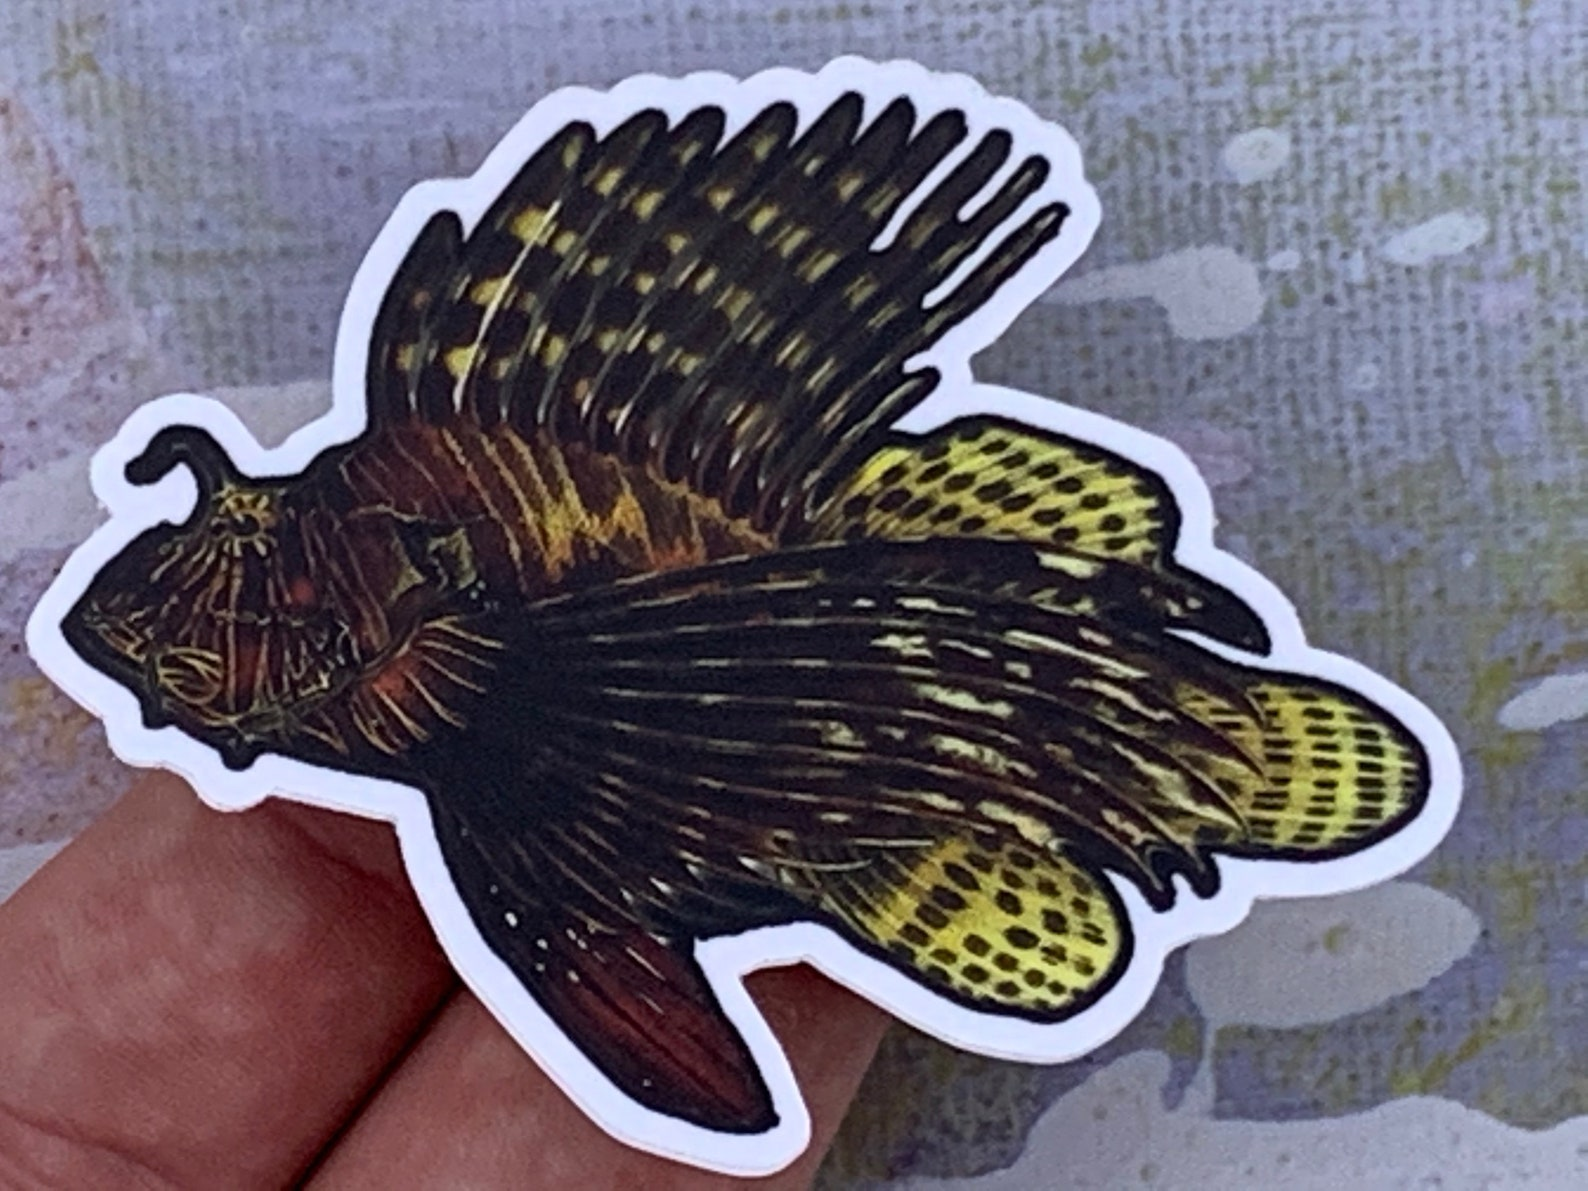 Photo of a red lionfish magnet in someone's hand